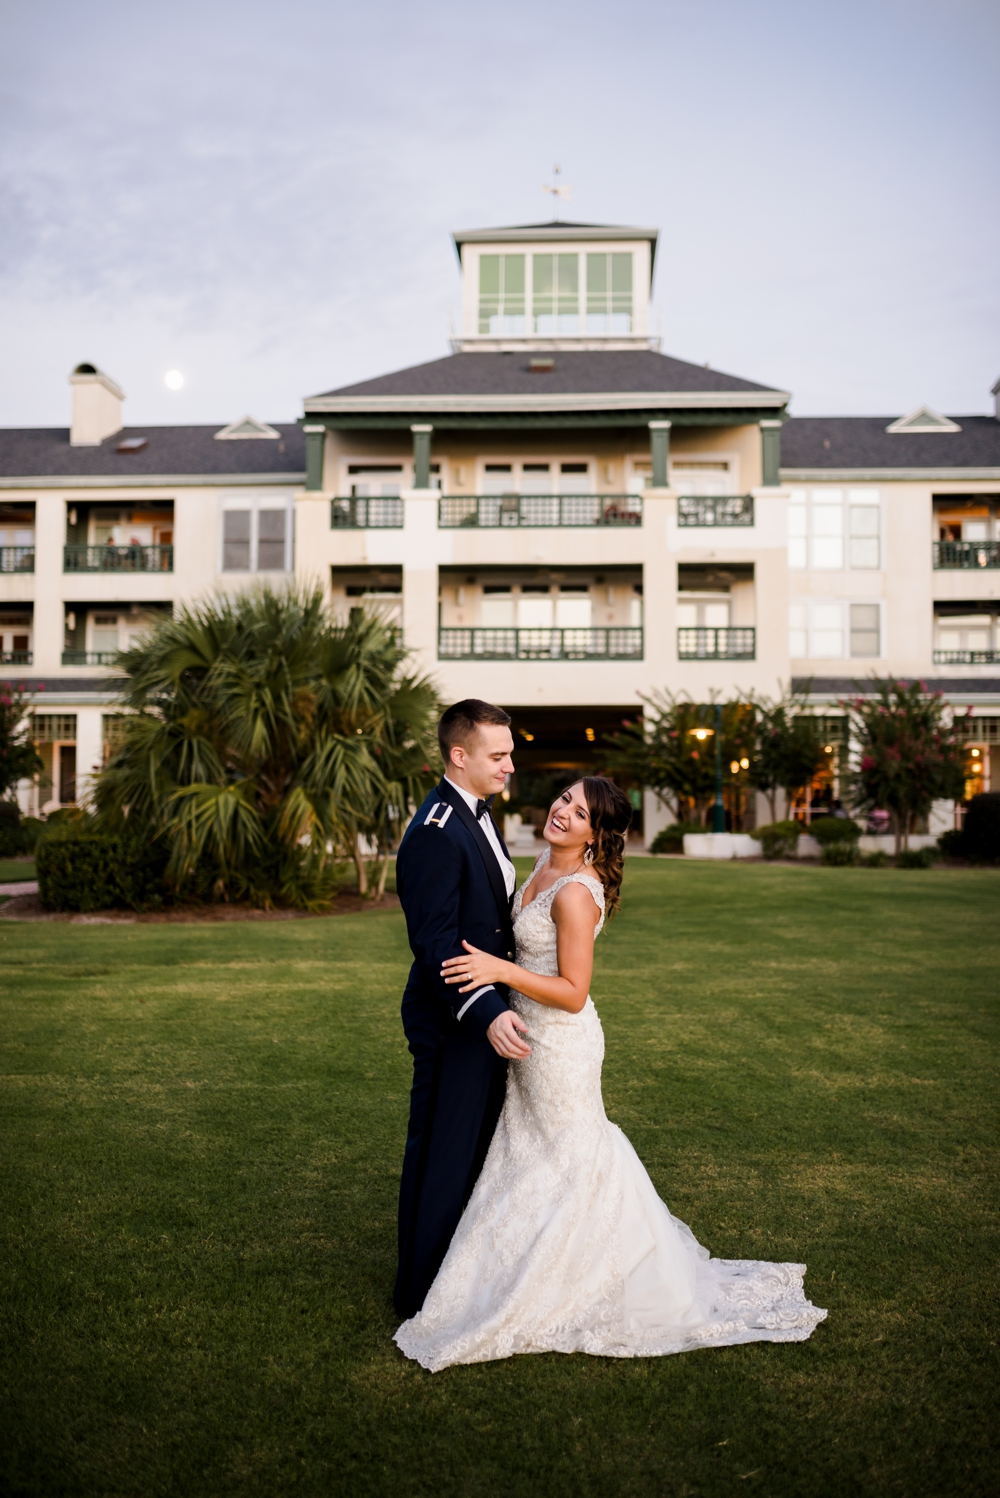 wallin-florida-wedding-photographer-kiersten-grant-173.jpg